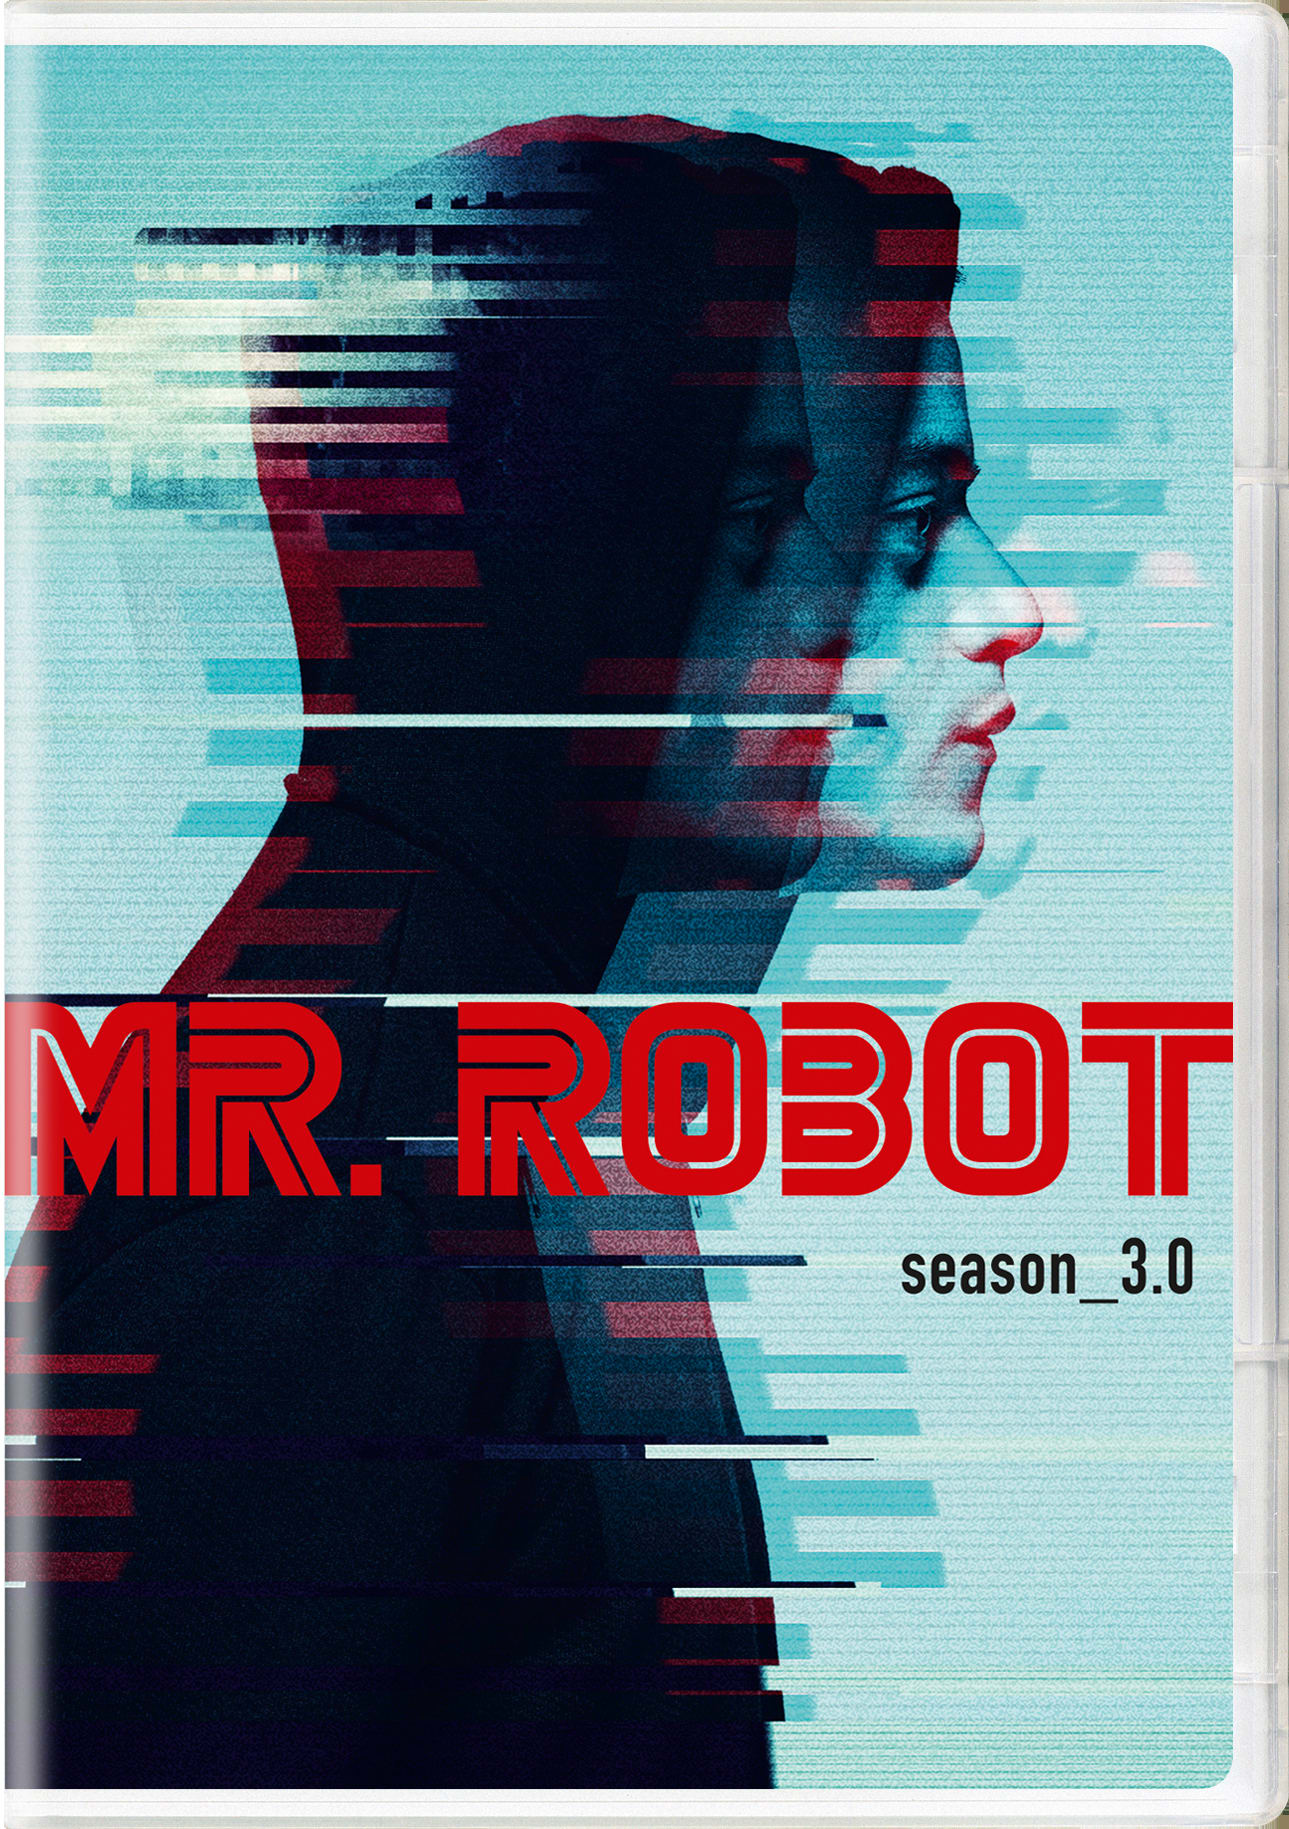 Mr. Robot: Season_3.0 [DVD]